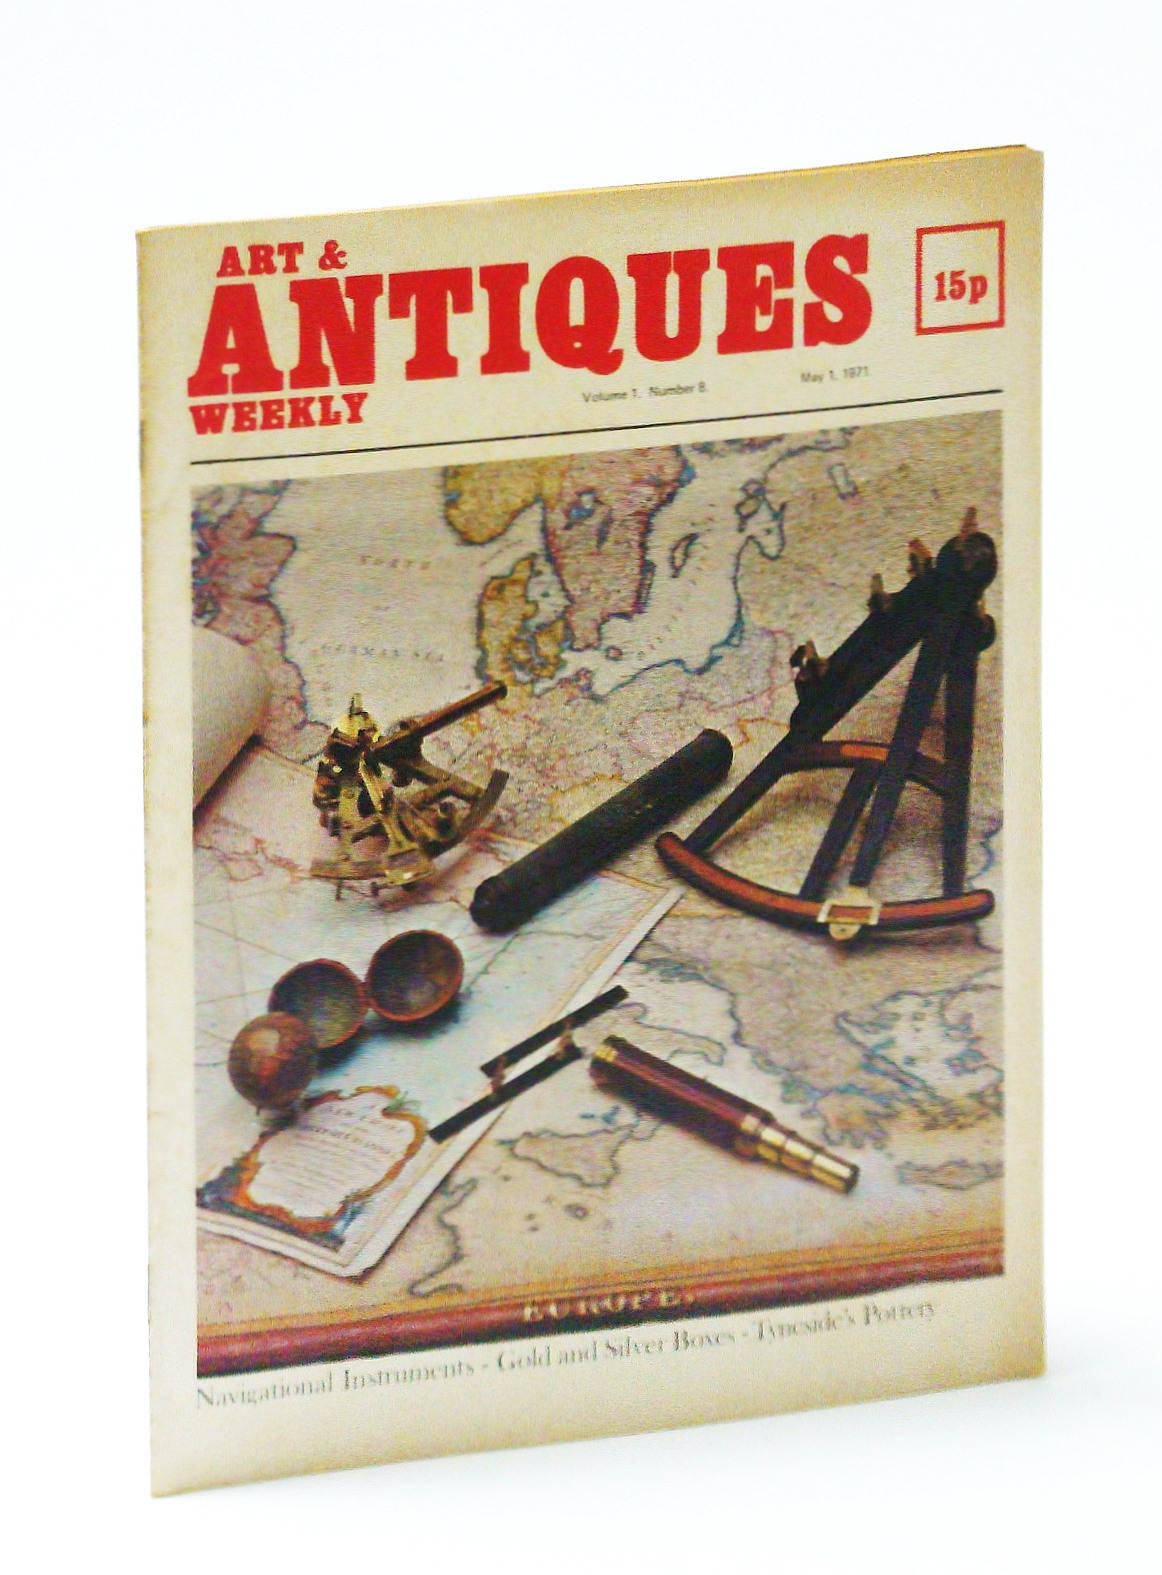 Image for Art & (and) Antiques Weekly, May 1, 1971: Navigational Instruments / Gold and Silver Boxes / Tyneside's Pottery